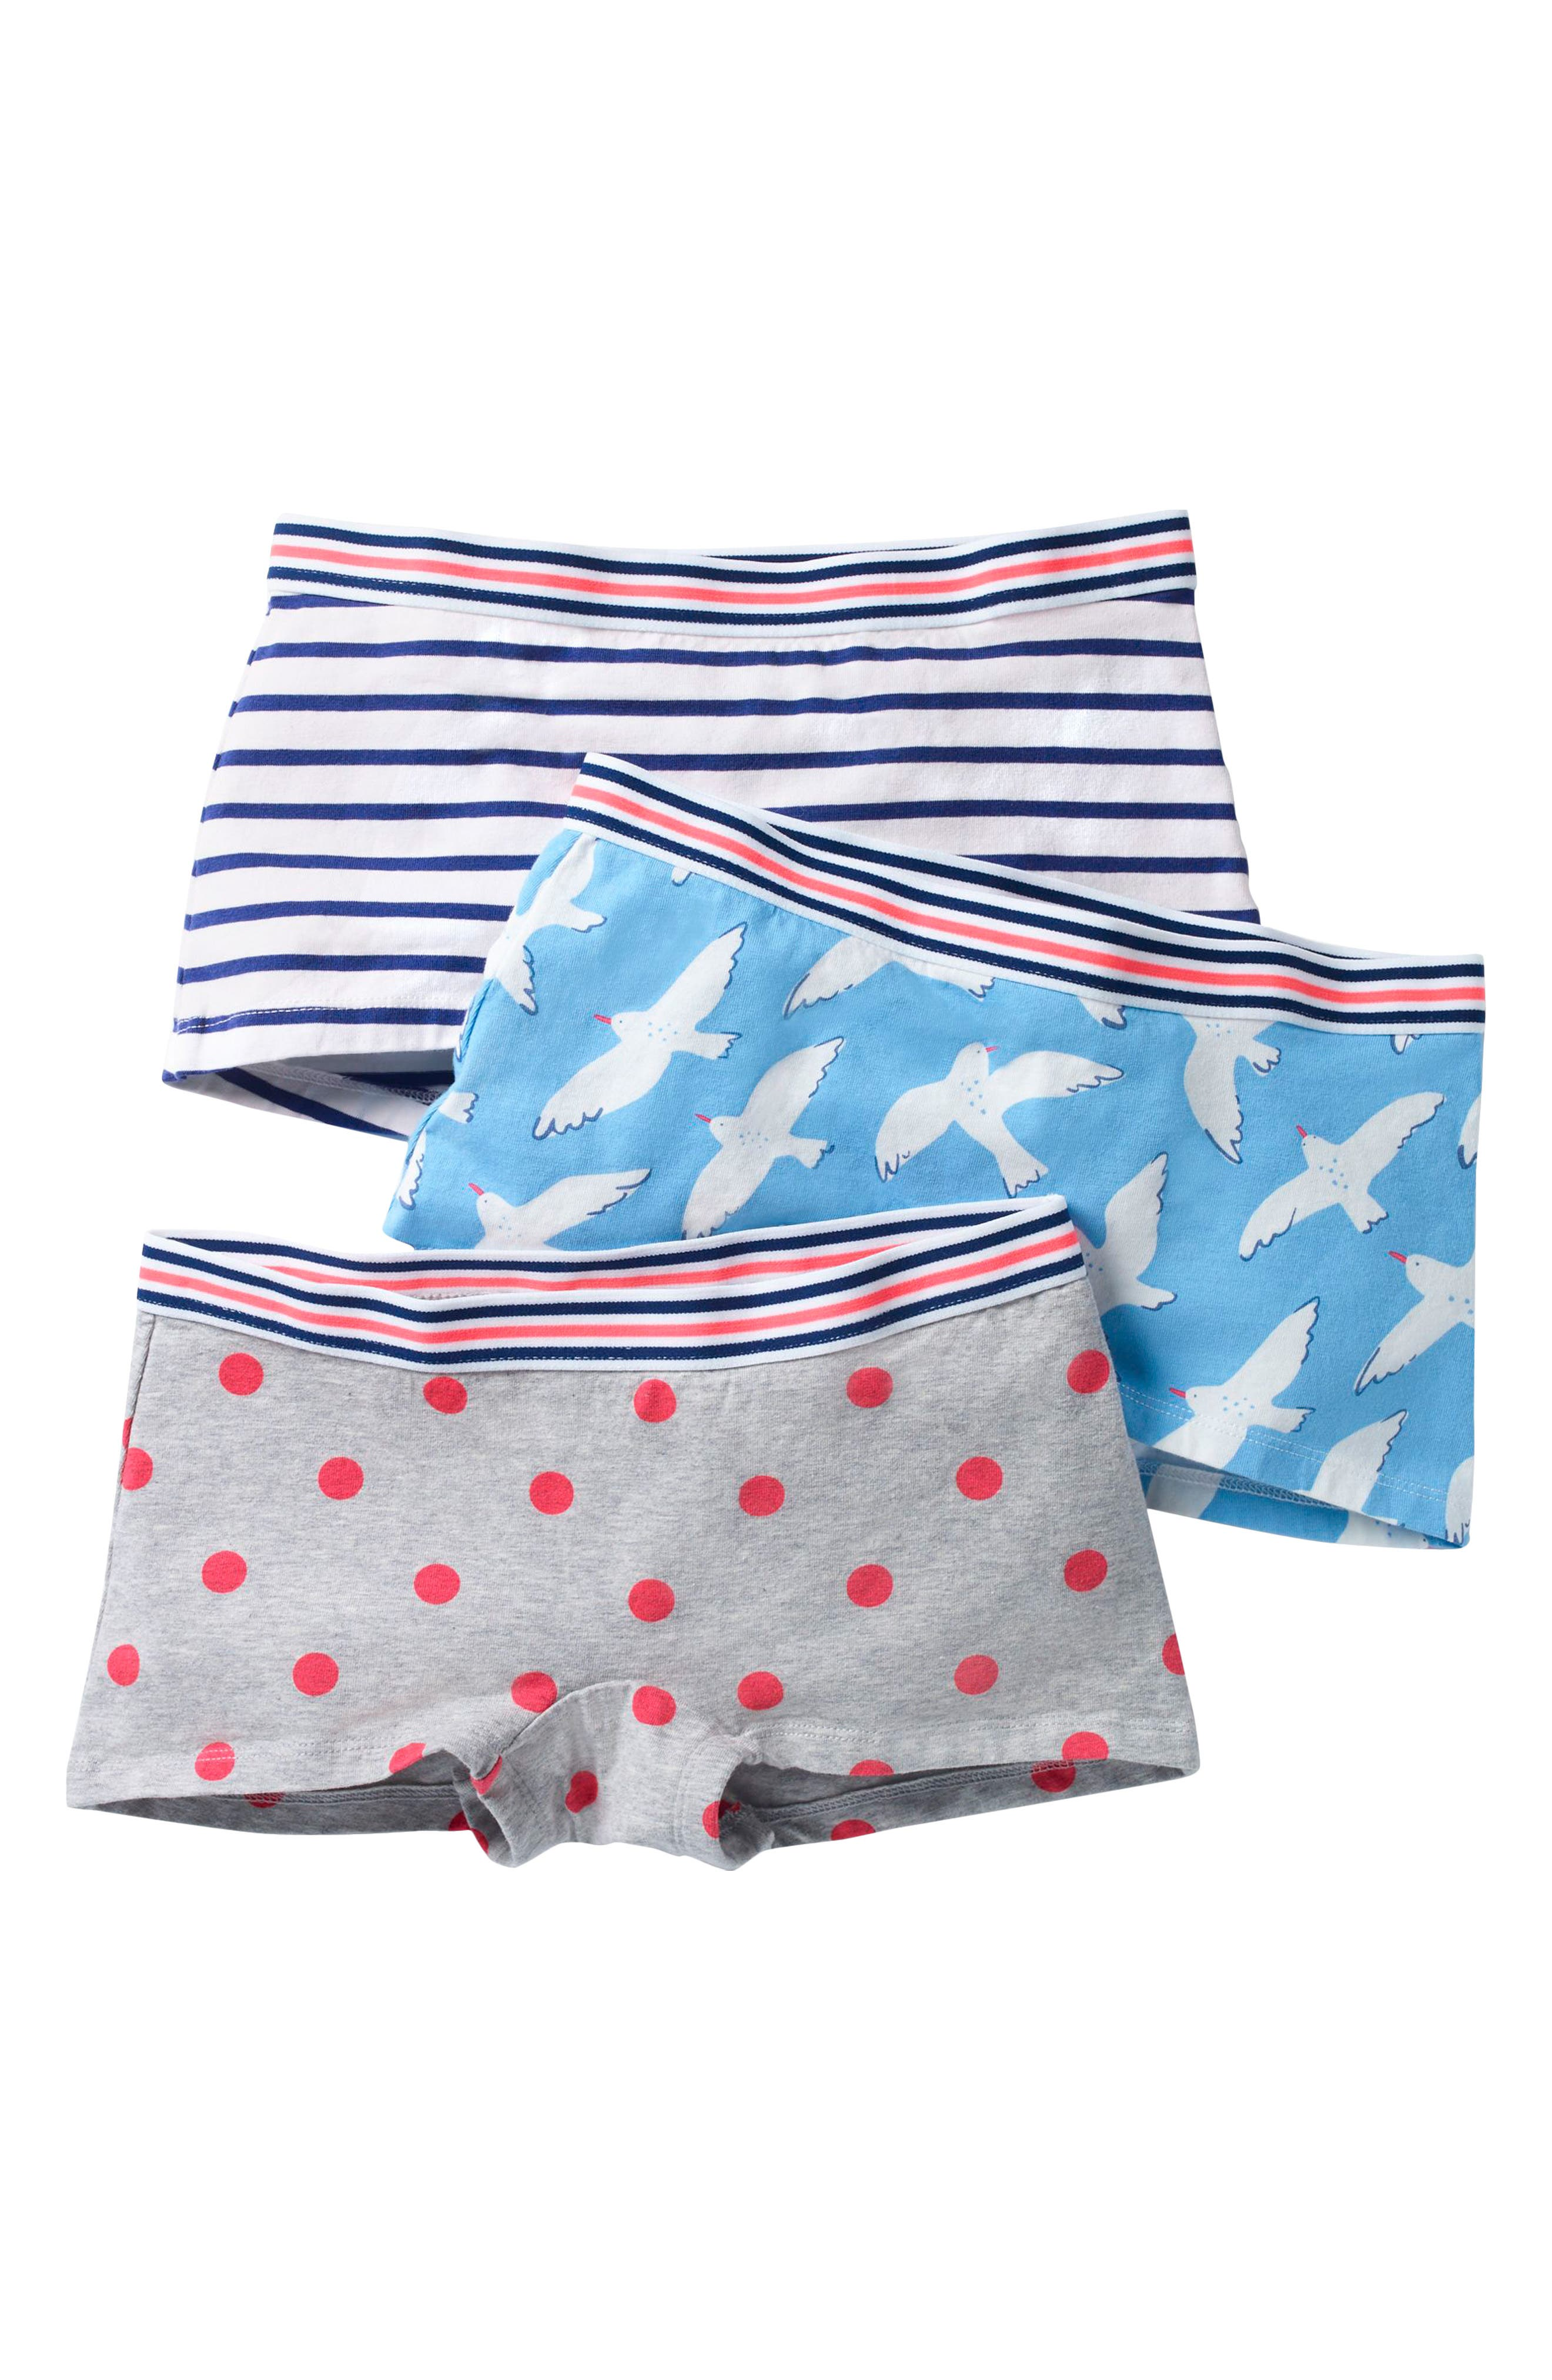 3-Pack Shorties Underwear,                             Main thumbnail 1, color,                             406